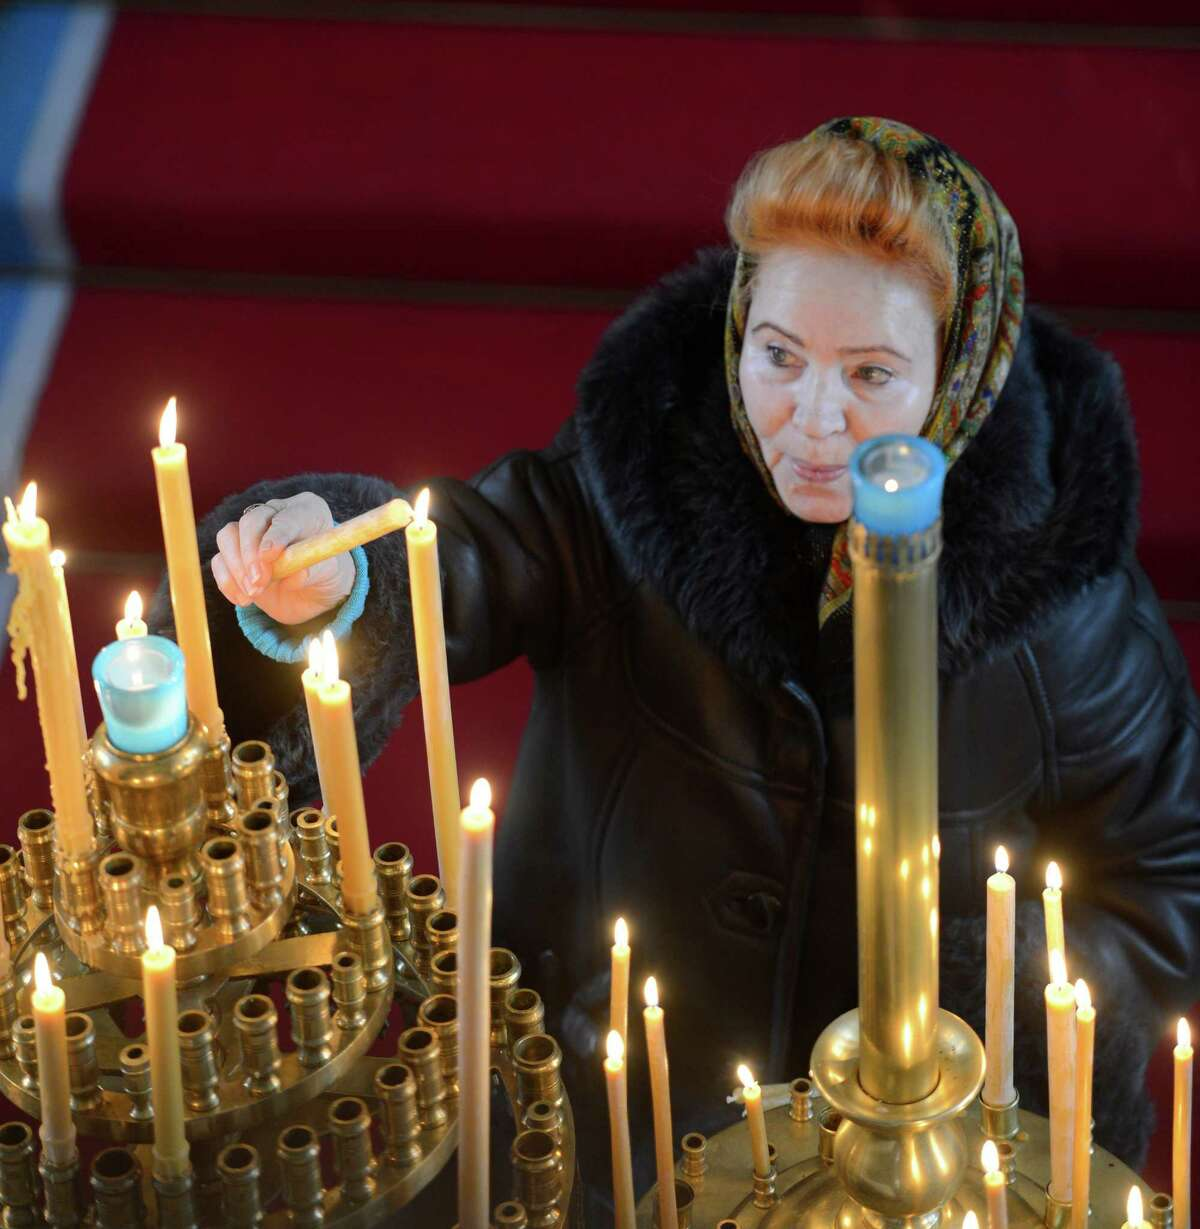 A parishioner lights candles before the Christmas Day celebration at the Nativity of the Mother of God Russian Orthodox Church Monday morning, Jan. 7, 2013. in Colonie, N.Y. The Russian Orthodox Church uses the